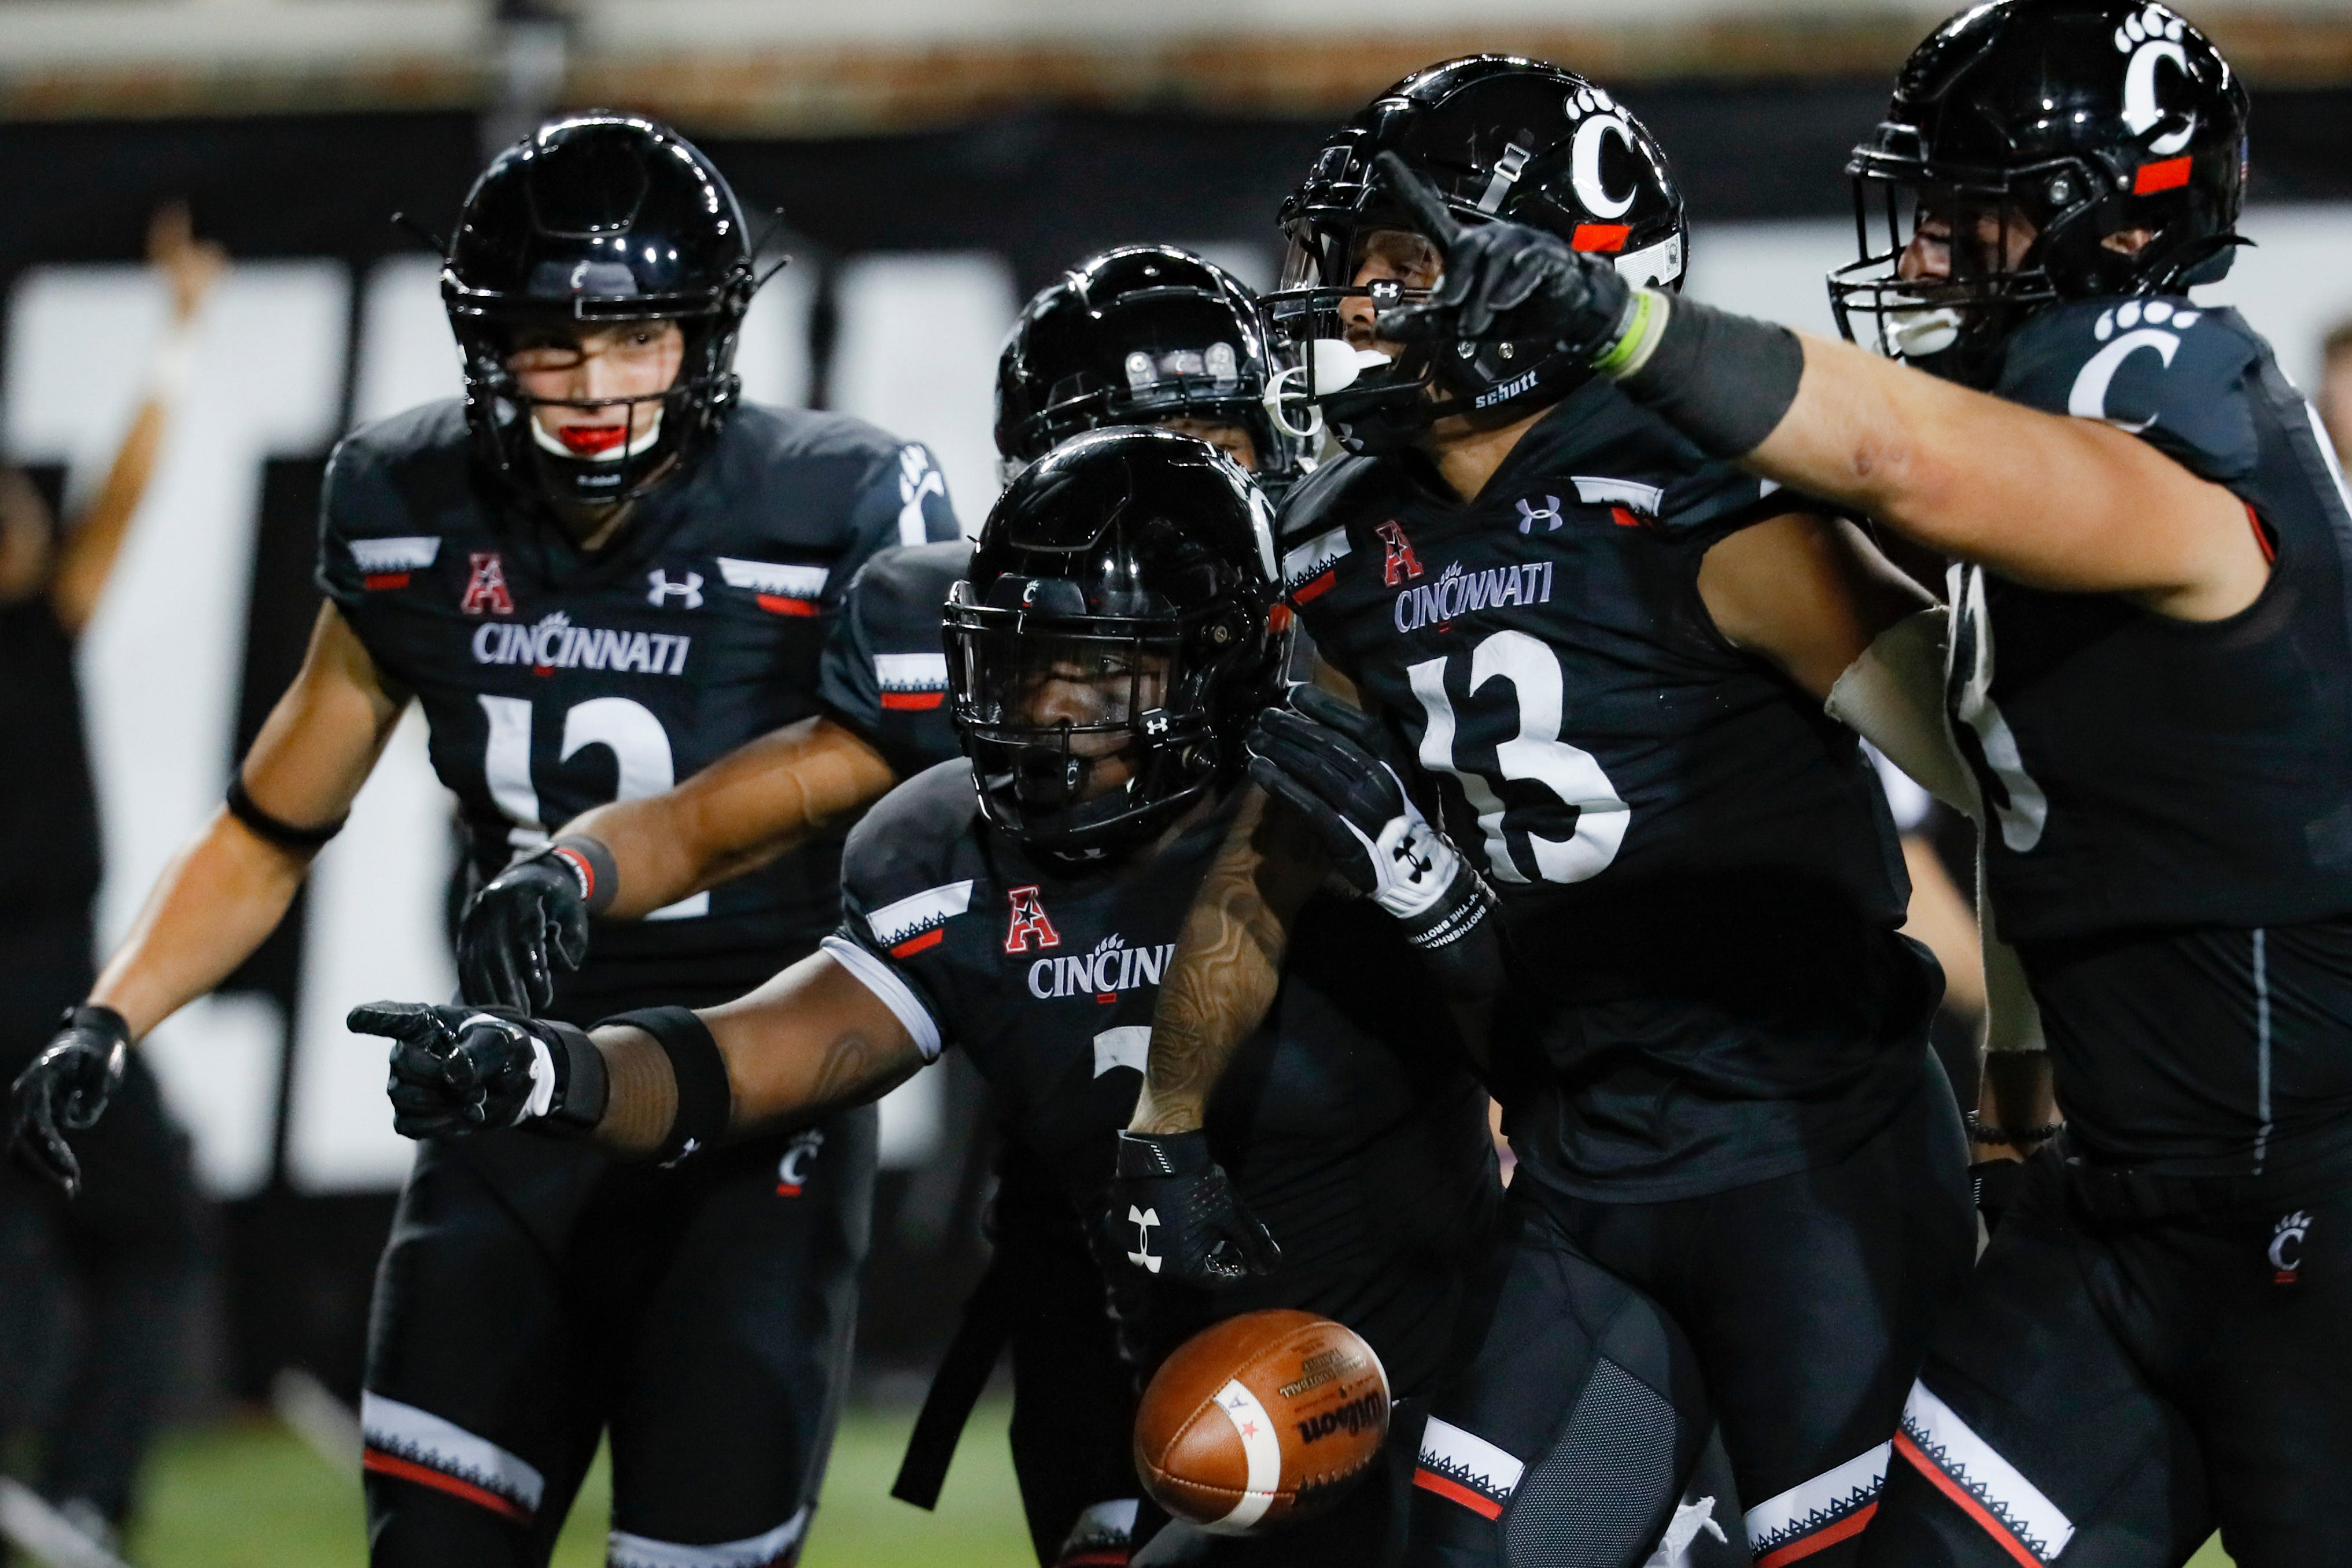 College Football Ucf Upset By Cincinnati In Pivotal Aac Matchup